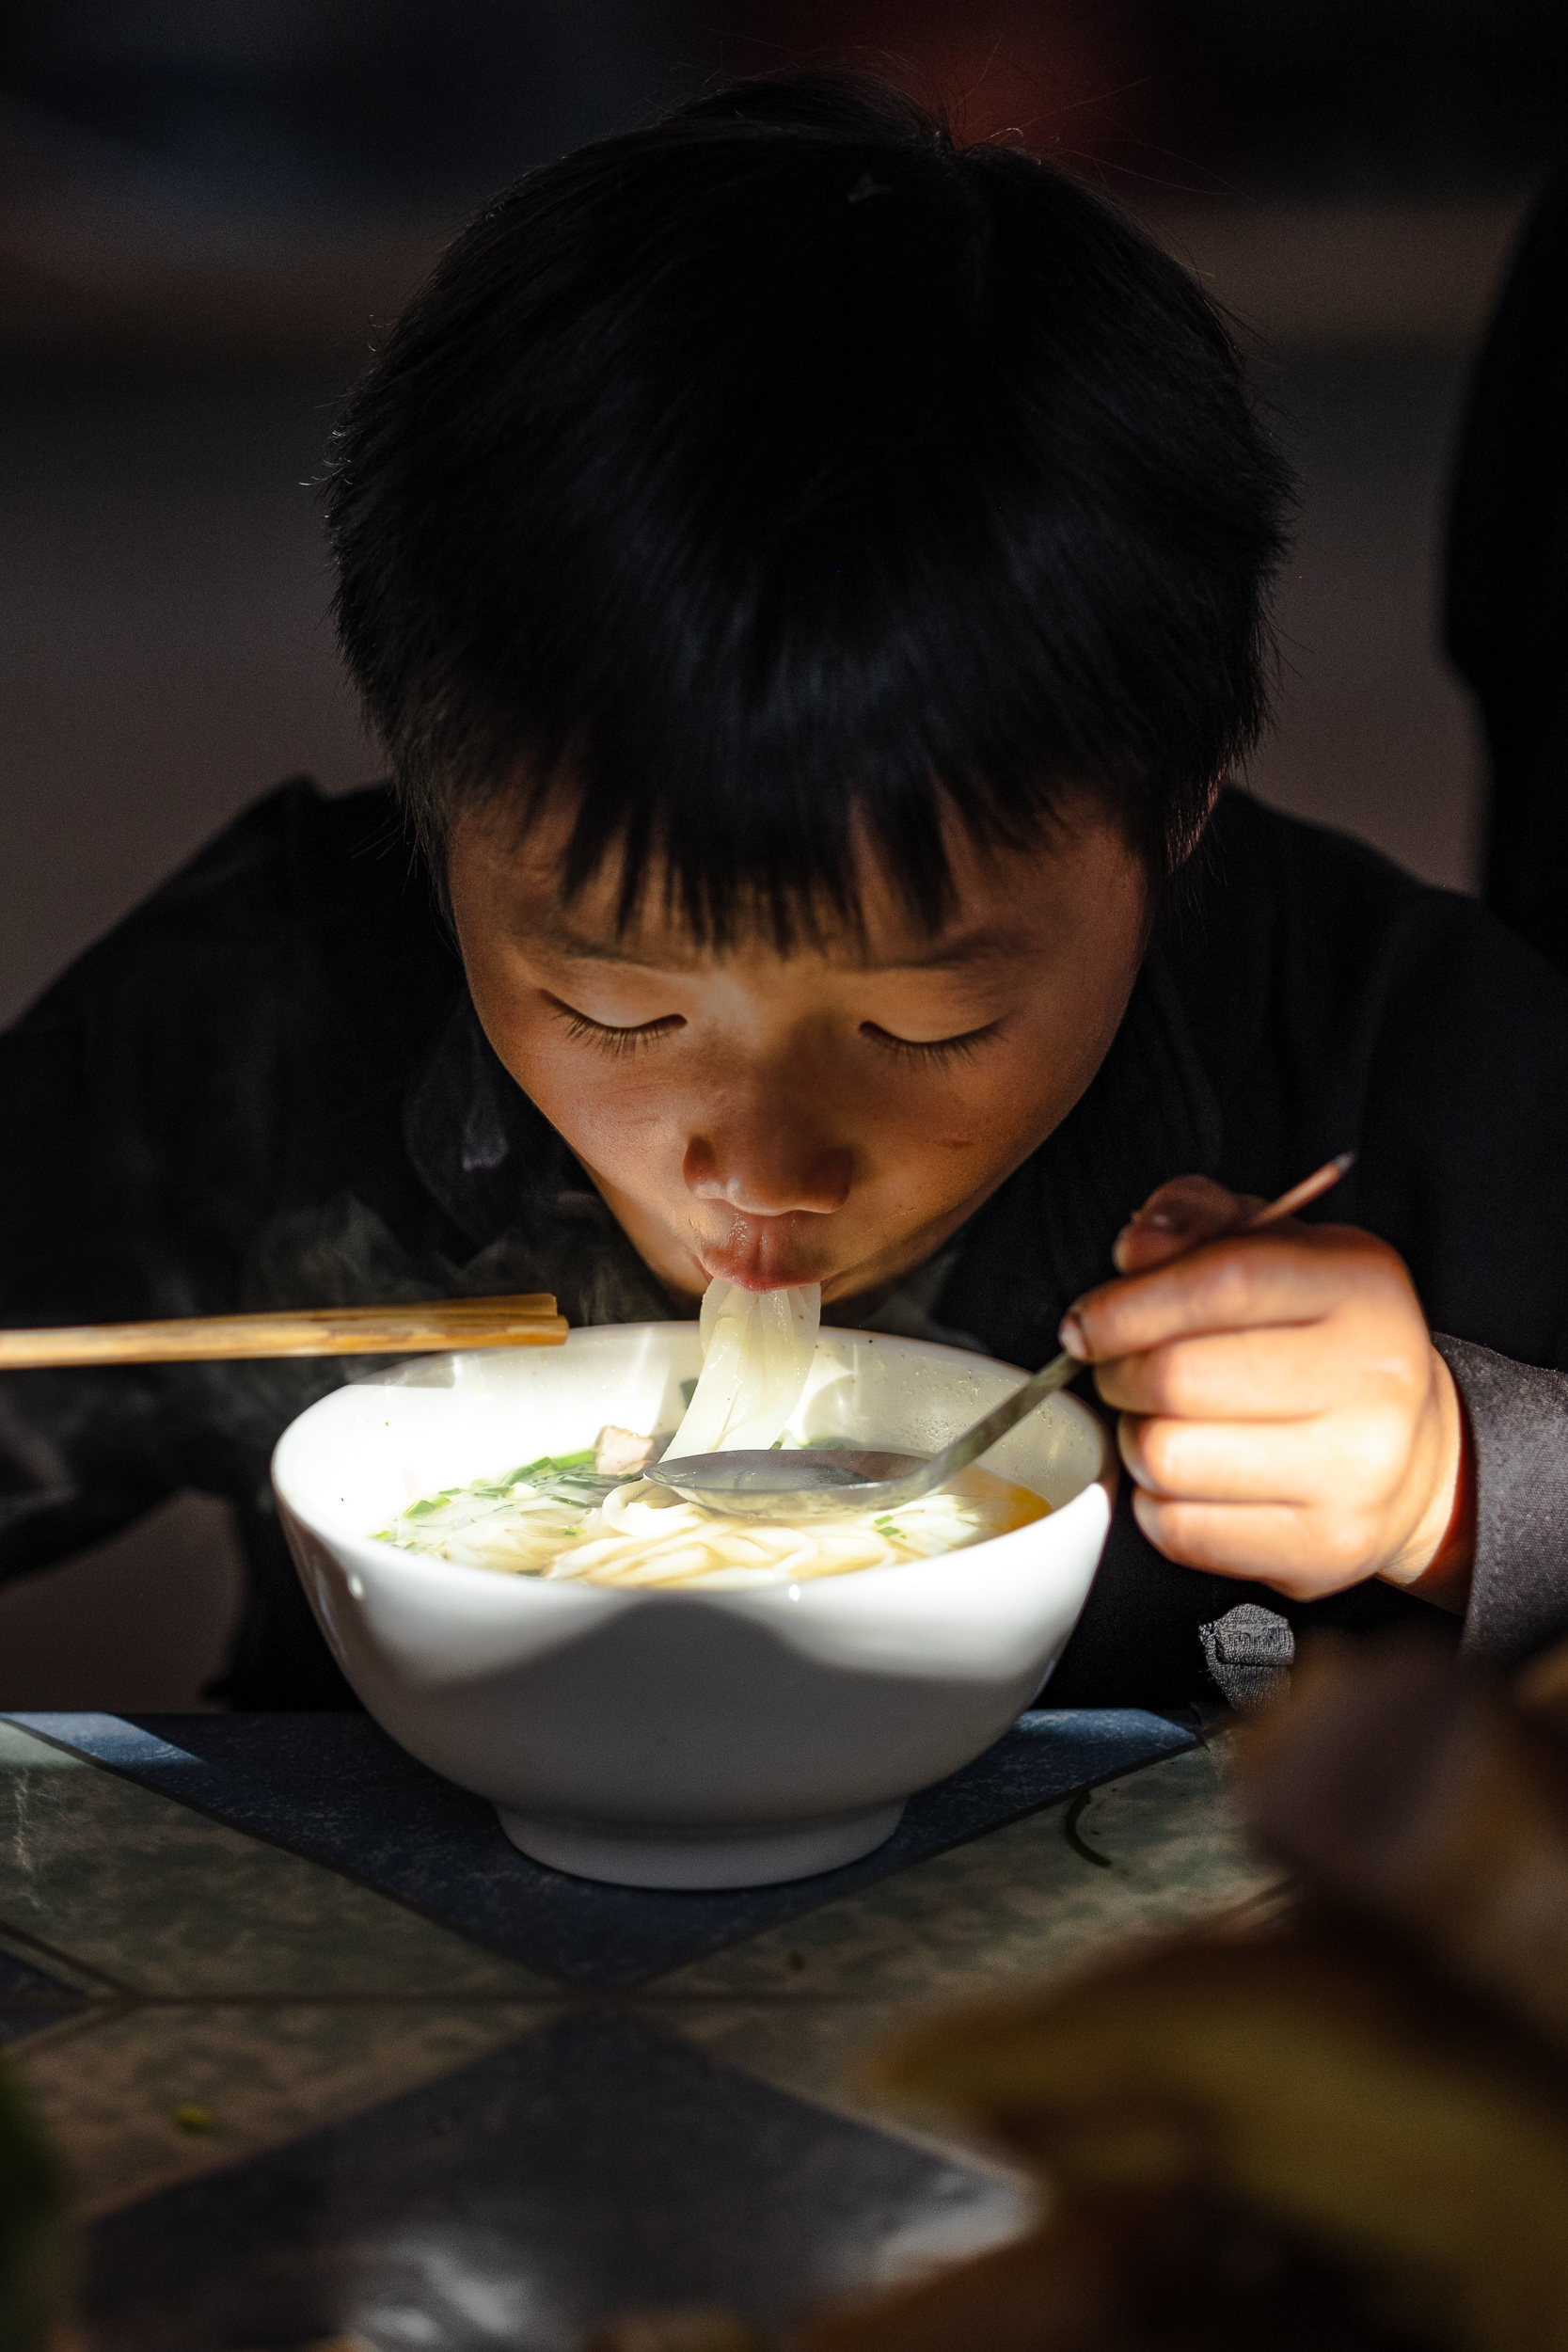 A boy enjoying his pho noodles in Dong van market in Vietnam.